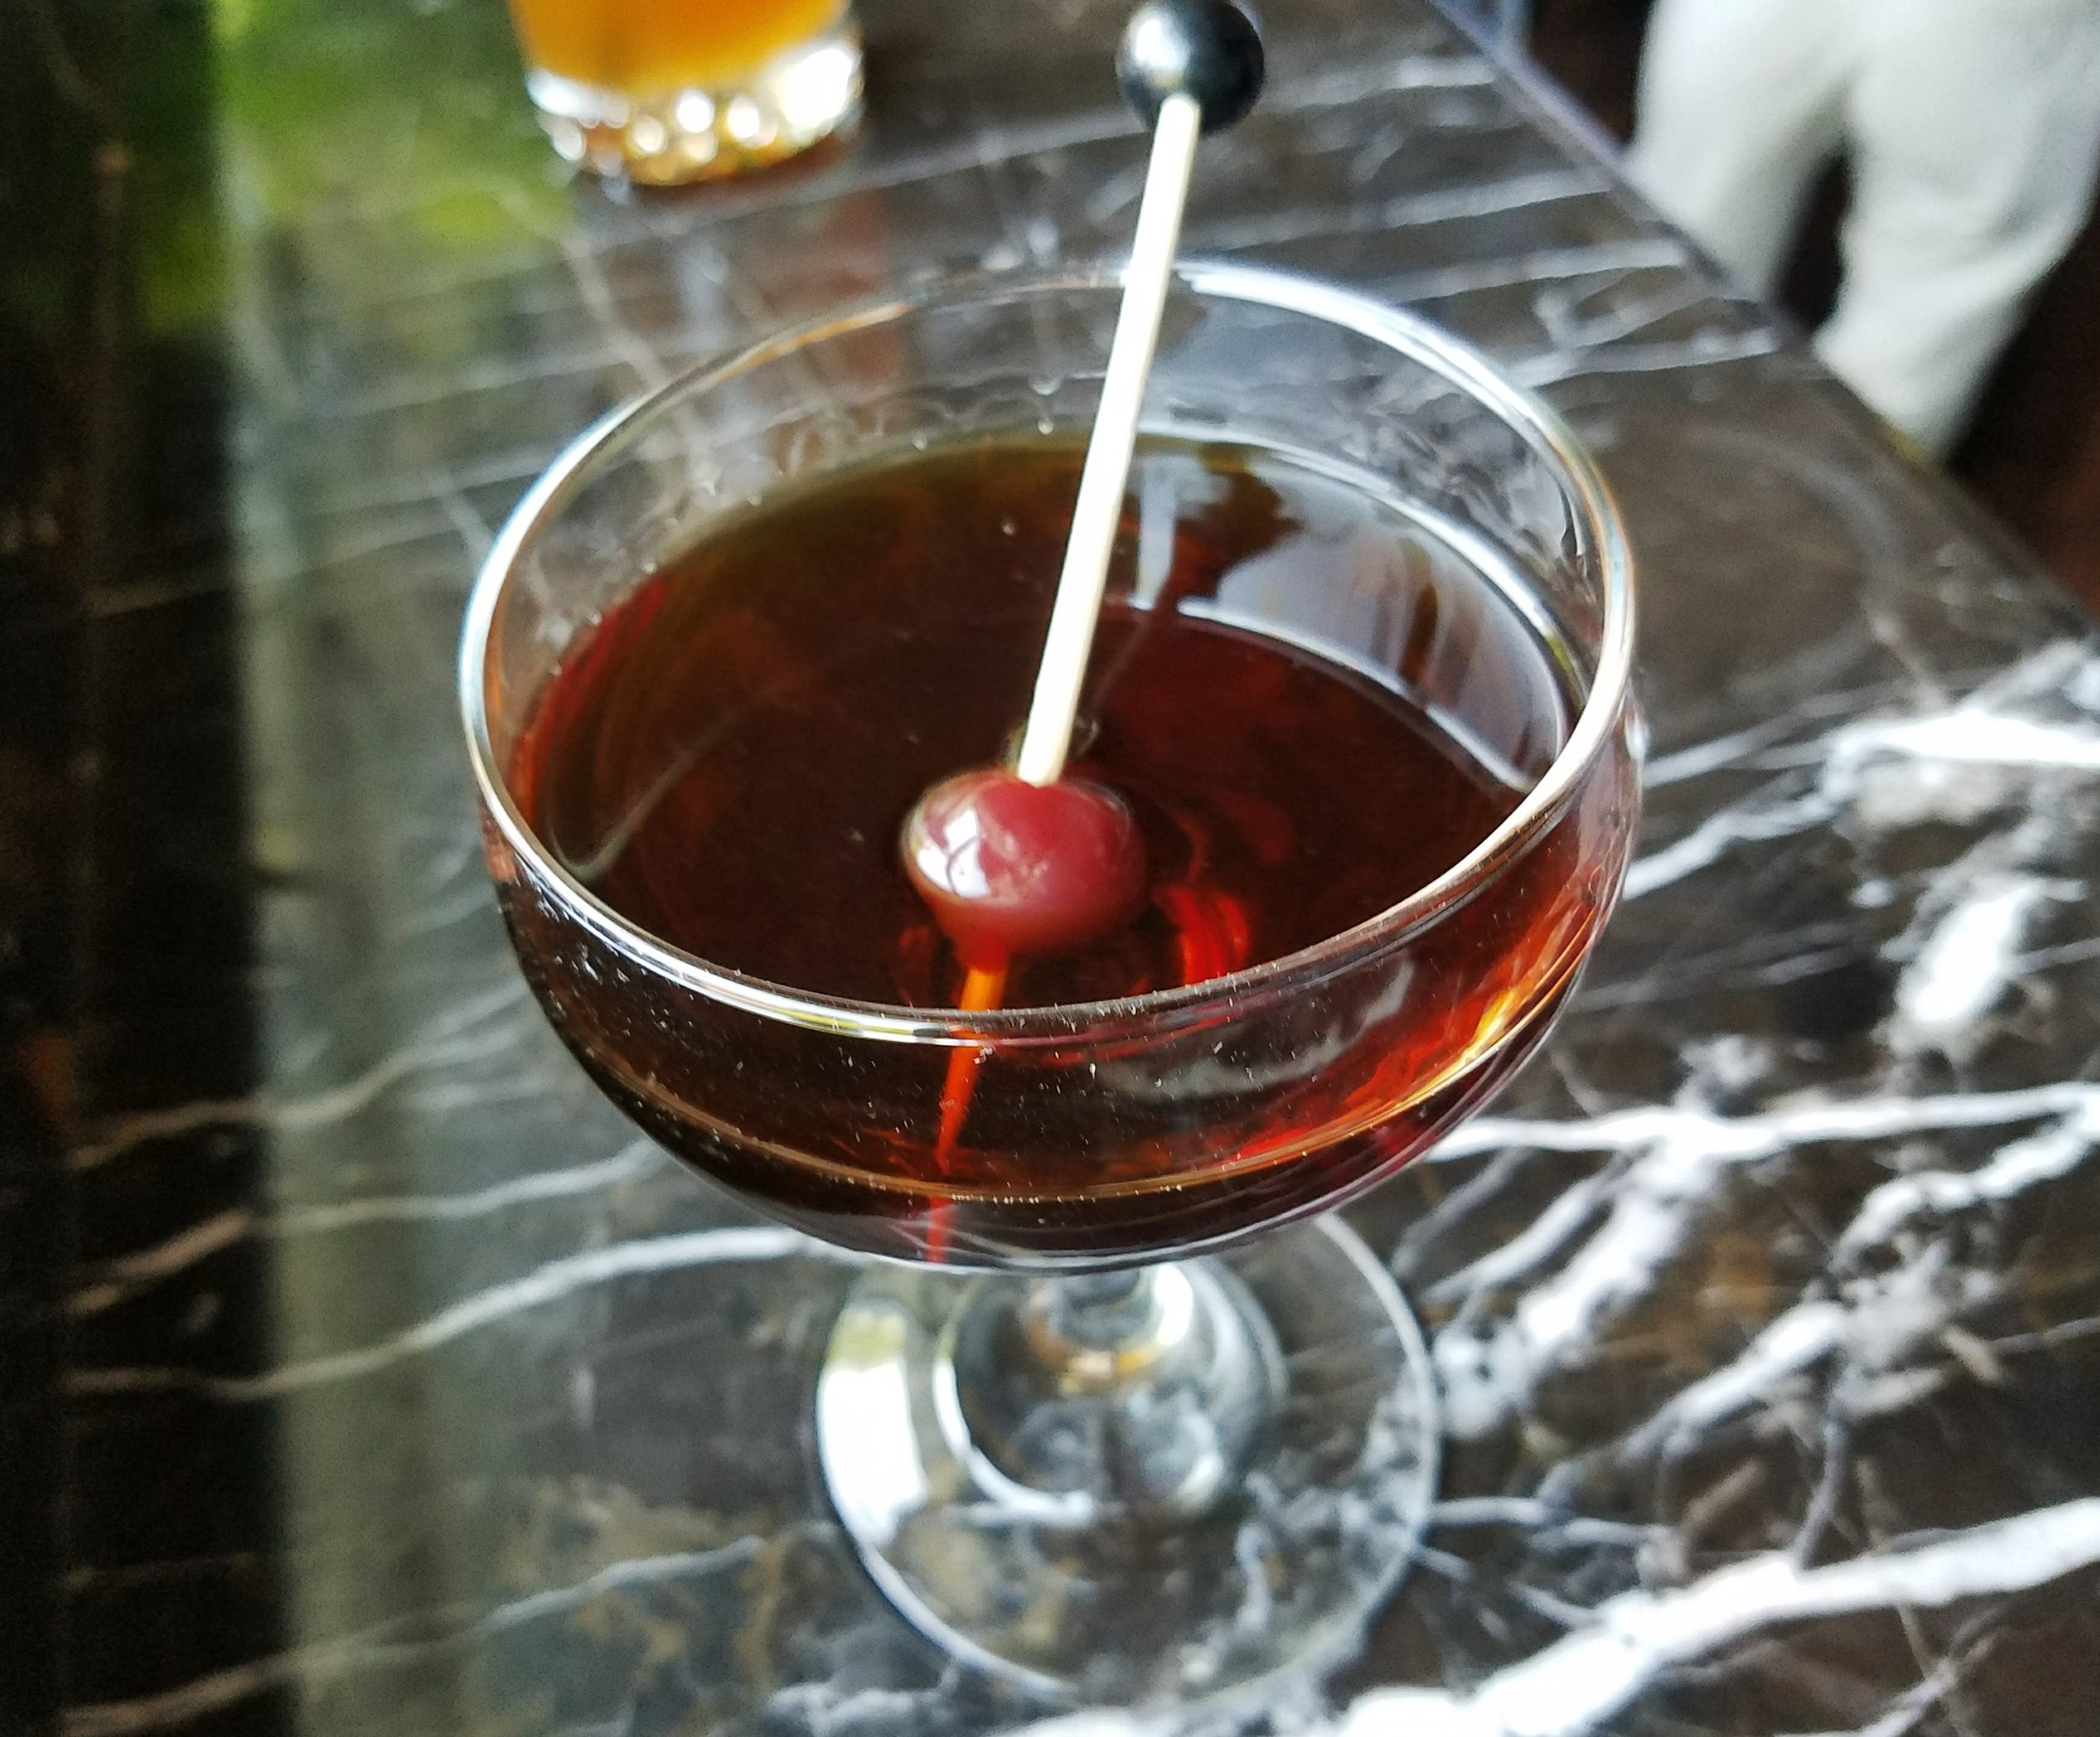 Smoked Manhattan